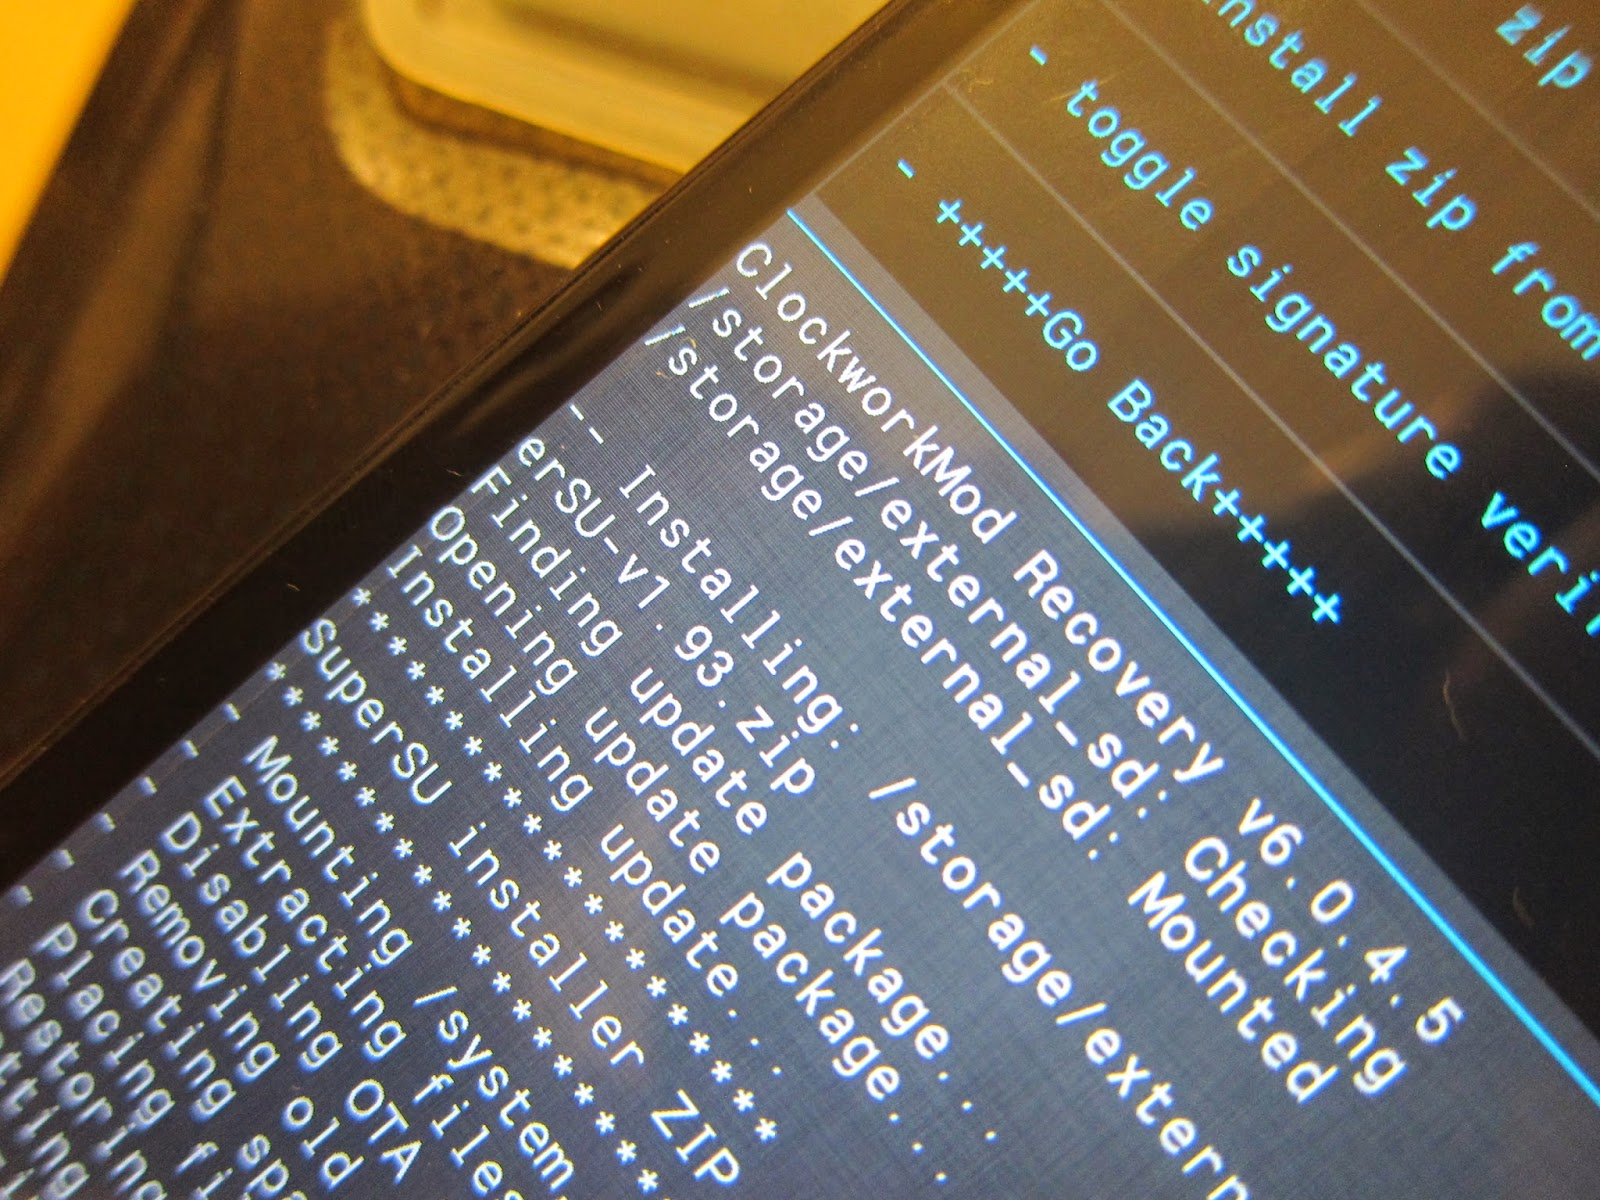 IMG 2335 - 【圖文教學】HTC Butterfly 4.3/4.4 解鎖+ROOT